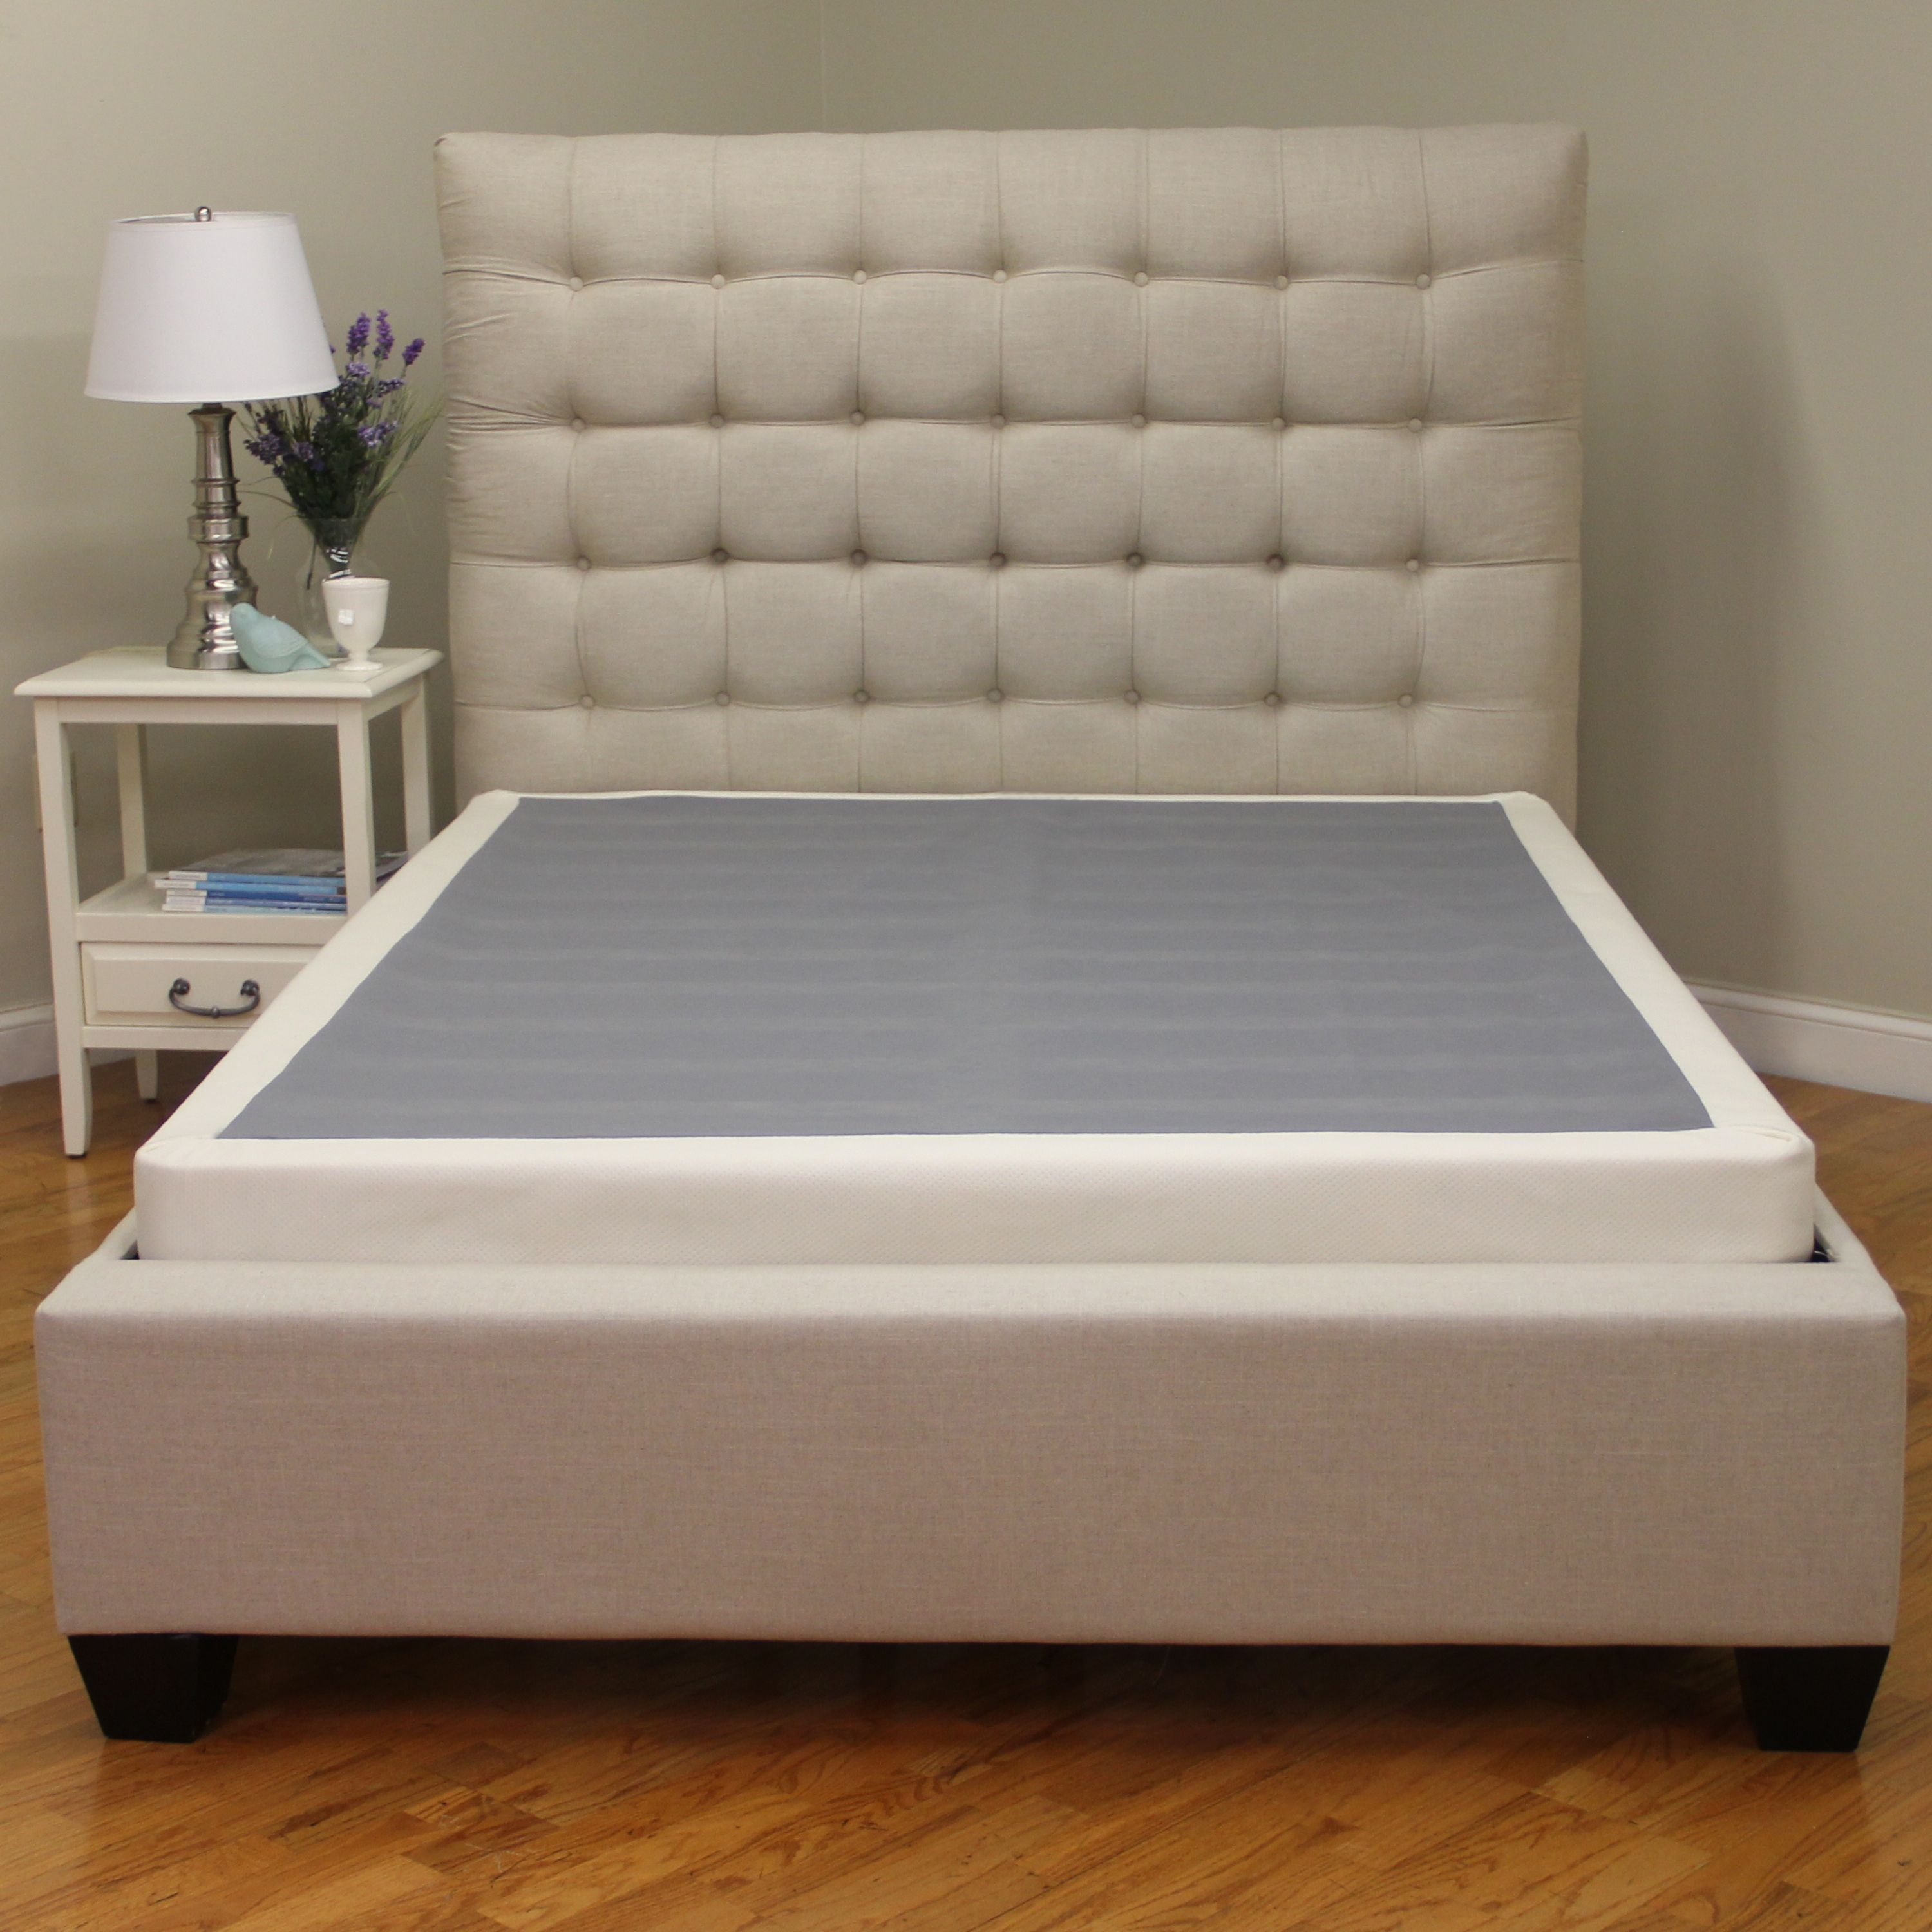 protection clean whites size protectors bed box and pillow mattress p queen boxspring rest set spring encasement bug